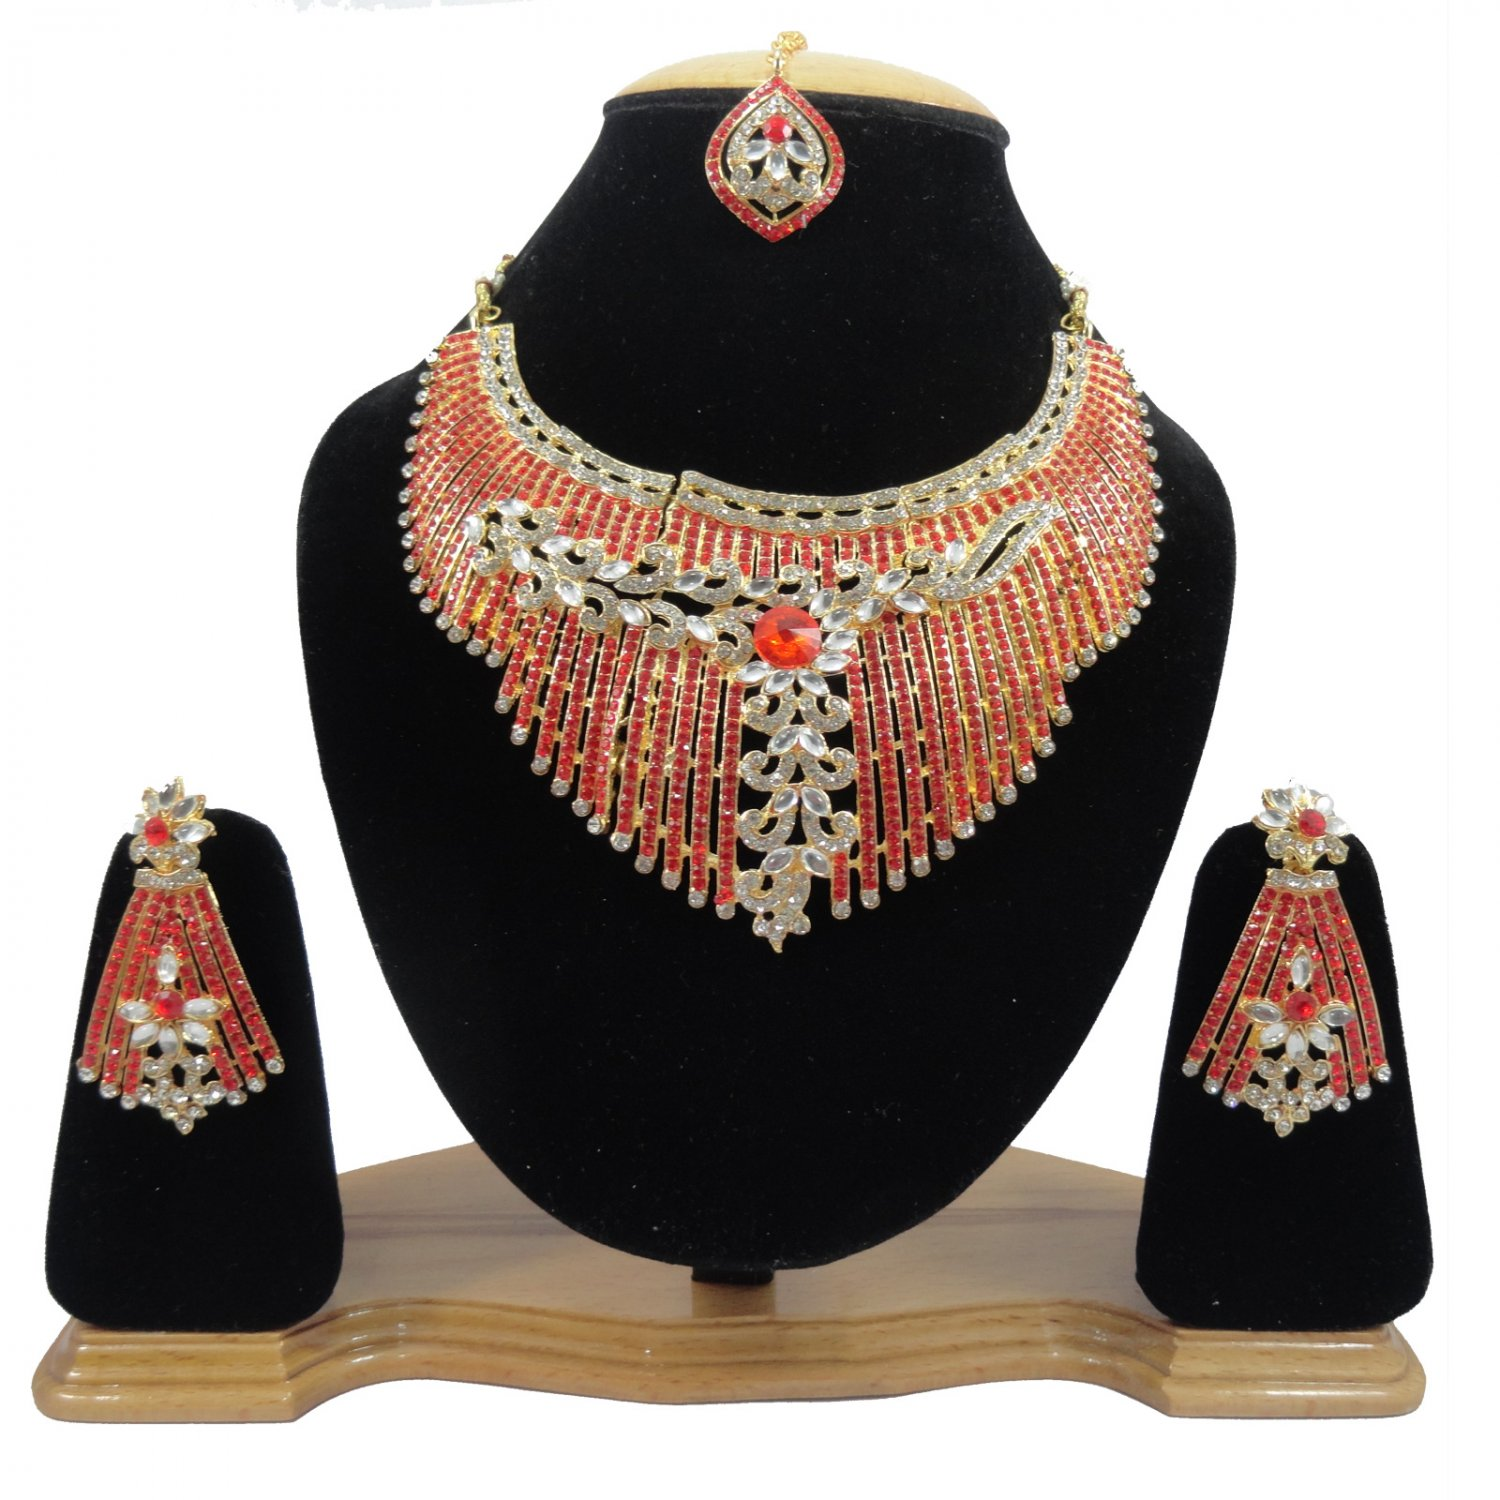 American Diamond Inspired Jewelry Attractive Princess Necklace Earrings and Maangtika Set Red Color